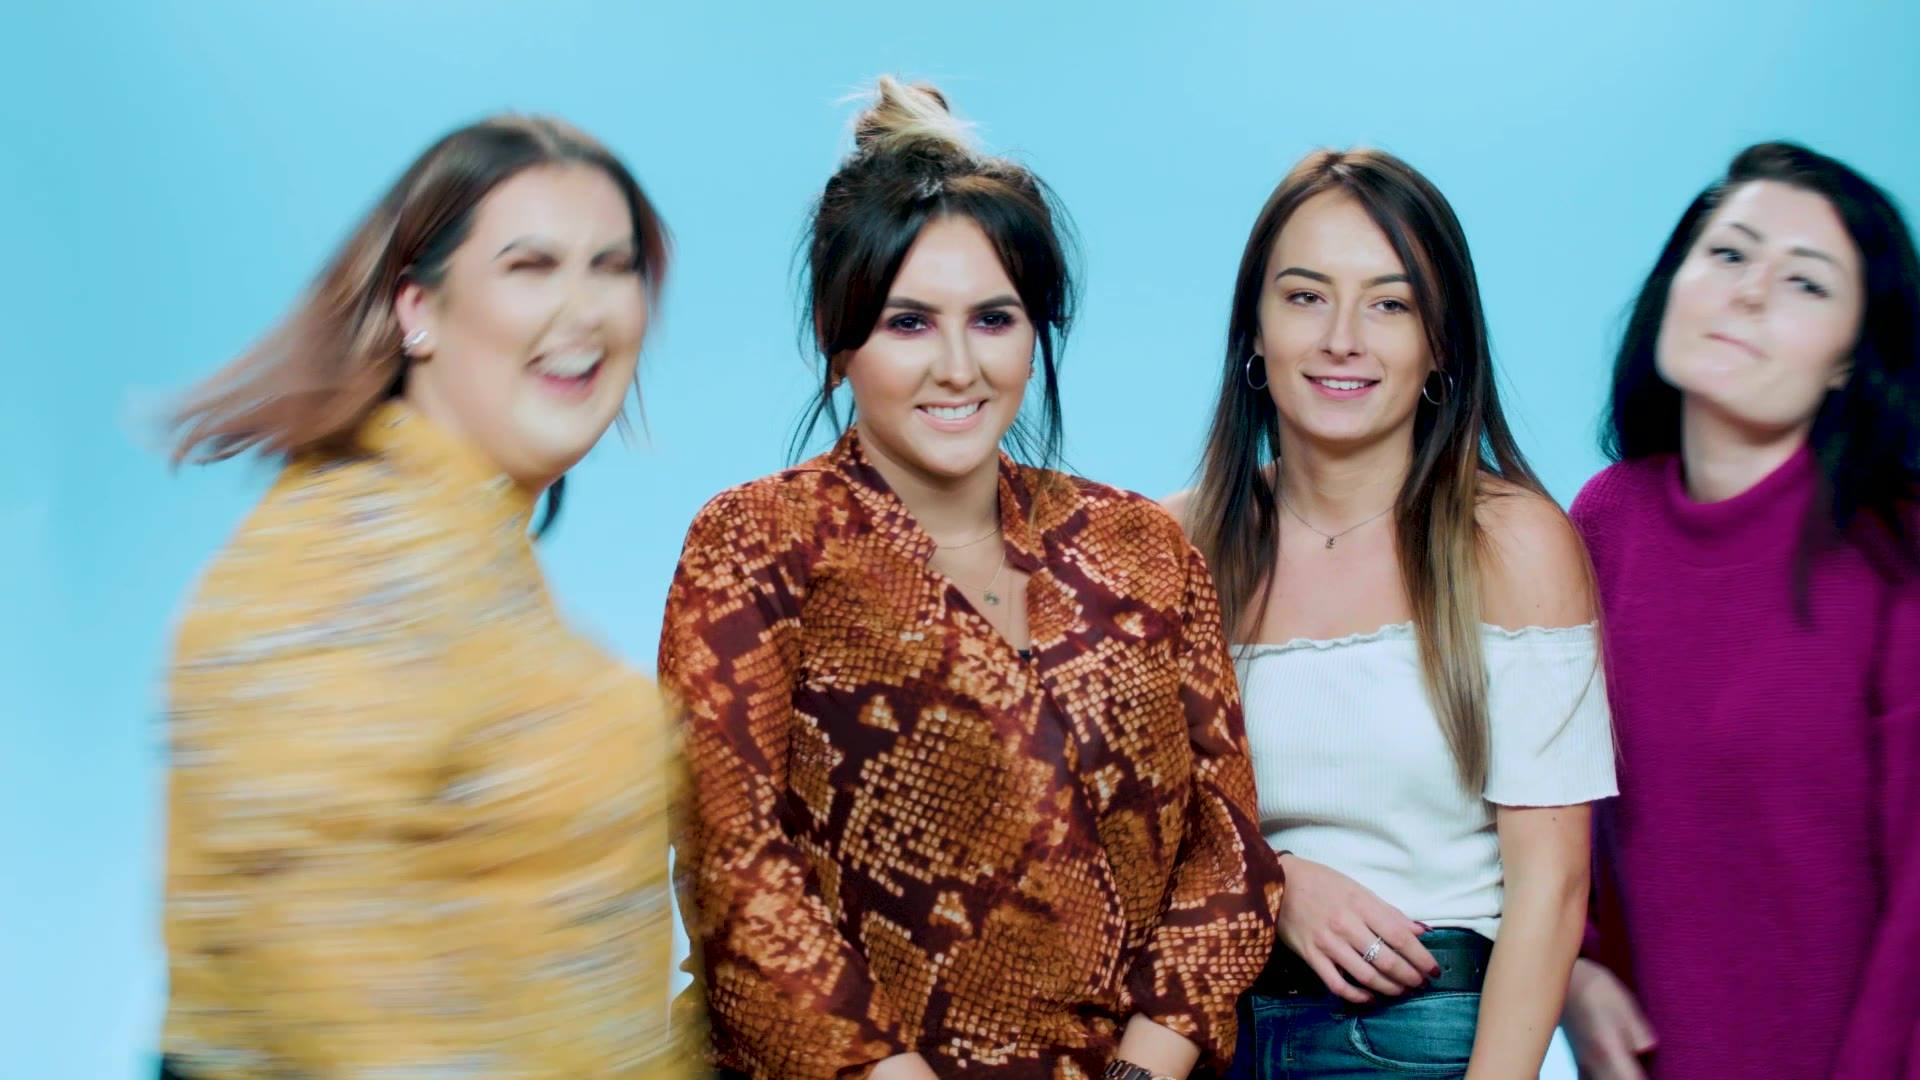 HERE THEY ARE!! Meet Nadine, Shannon, Beth & Samantha – our new vloggers! 🙌😍  Our fantastic four will be bringing you everything from their favourite savvy buys to top make up tips!  Stay tuned to see Shannon's vlog next week! 😁